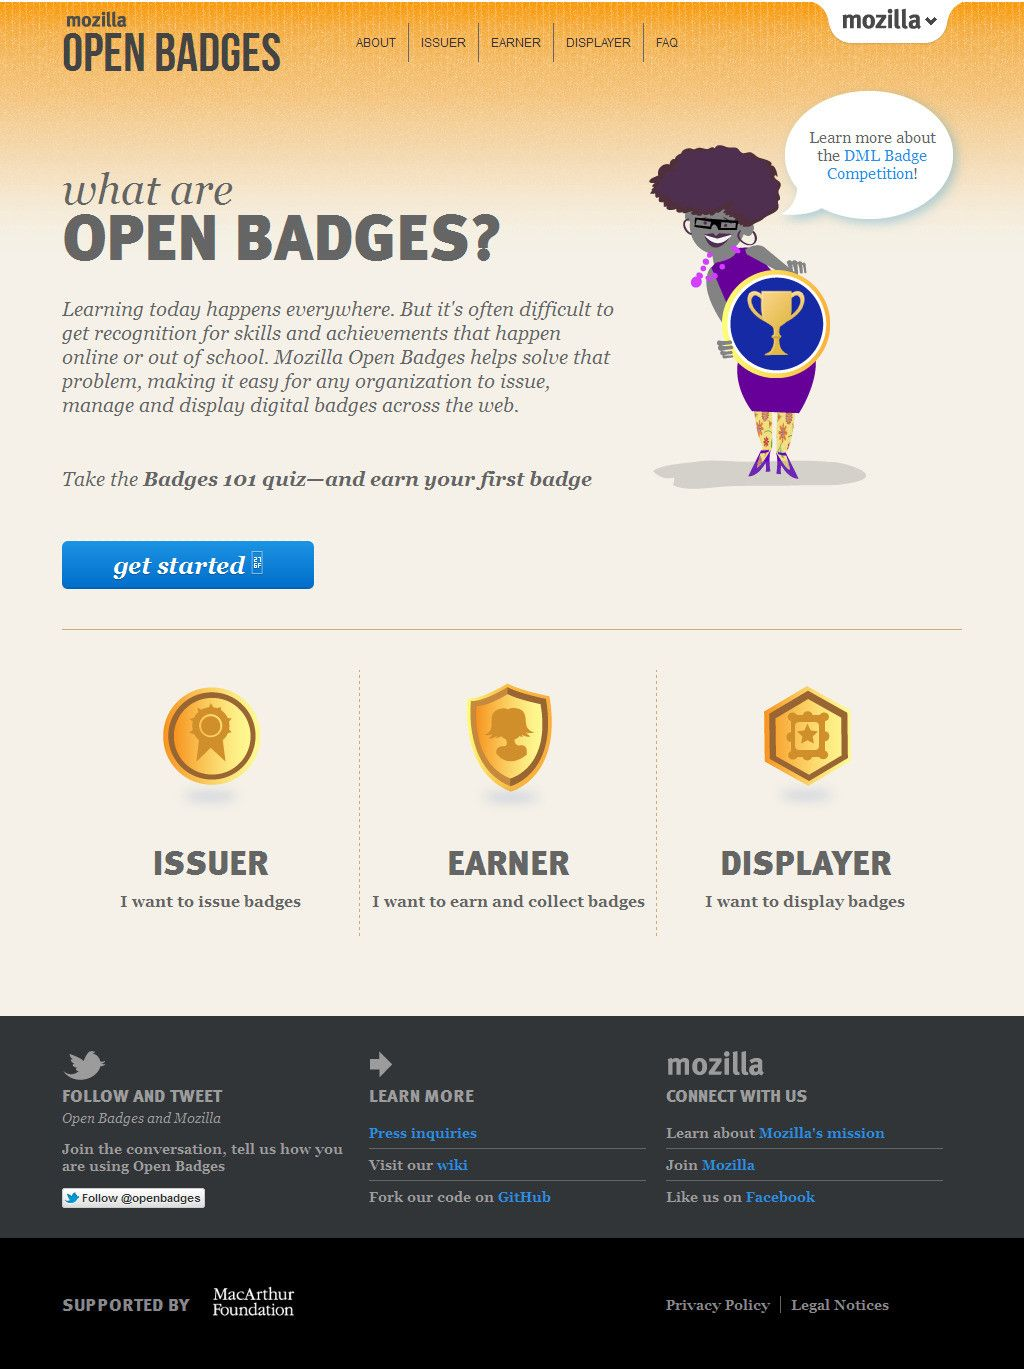 Mozilla Open Badges - Learning today happens everywhere. But it's often difficult to get recognition for skills and achievements that happen online or out of school. Mozilla Open Badges helps solve that problem, making it easy for any organization to issue, manage and display digital badges across the web.